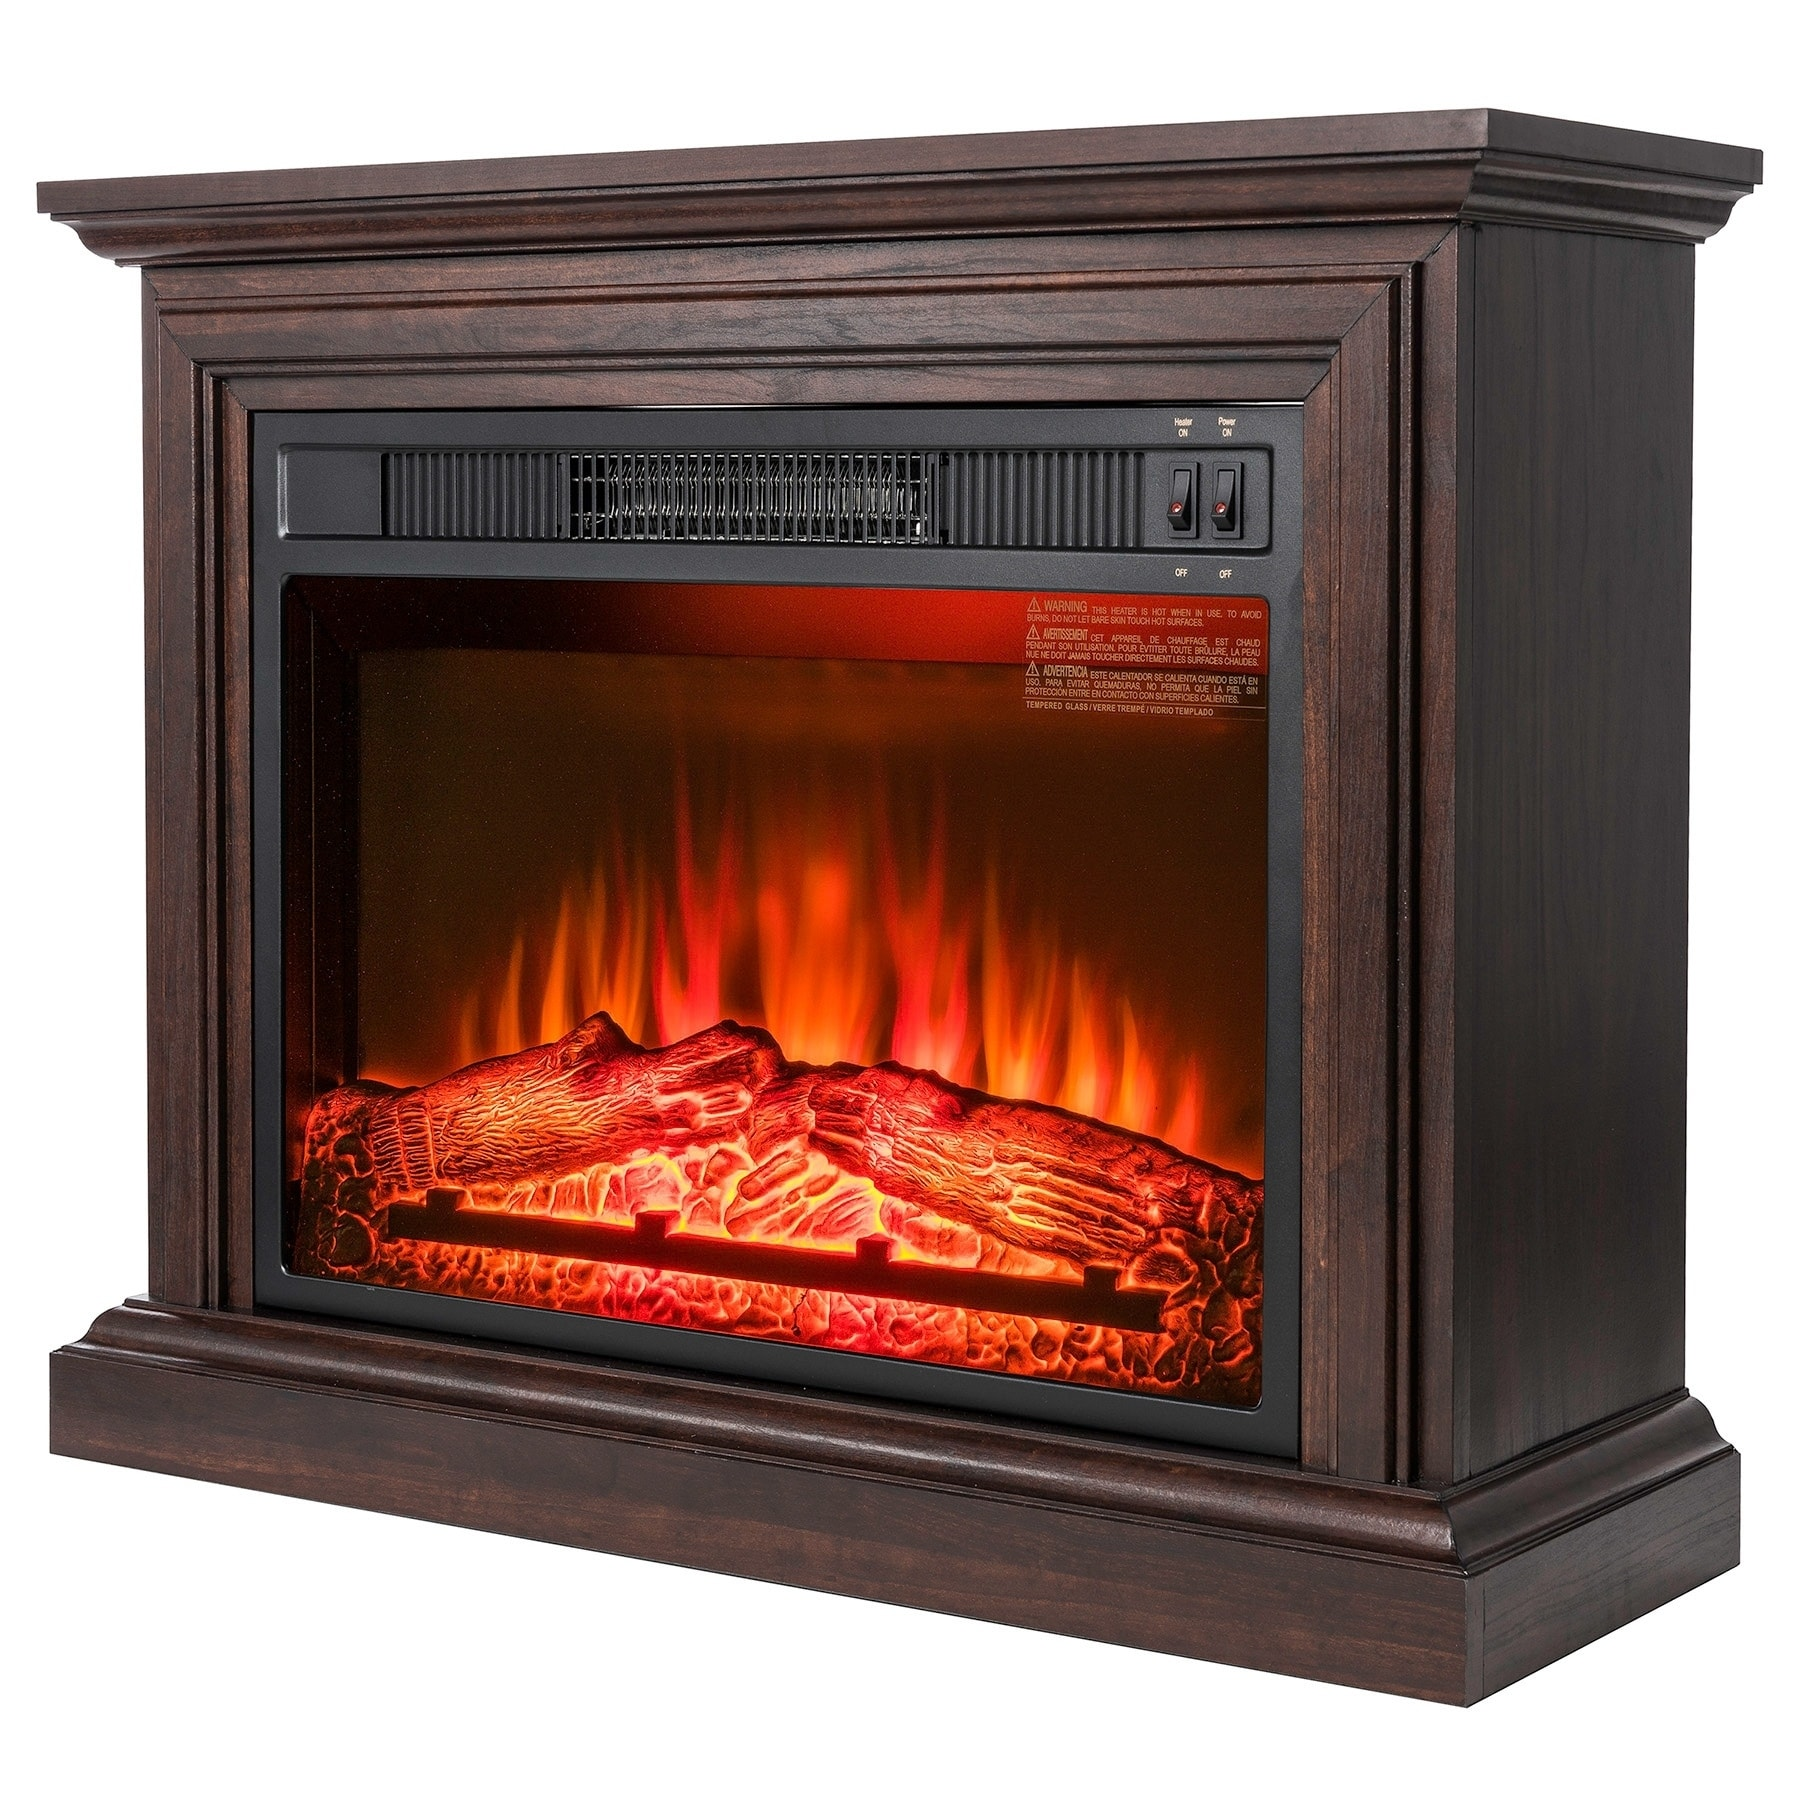 Shop Akdy Fp0091 32 Electric Fireplace Freestanding Brown Wooden